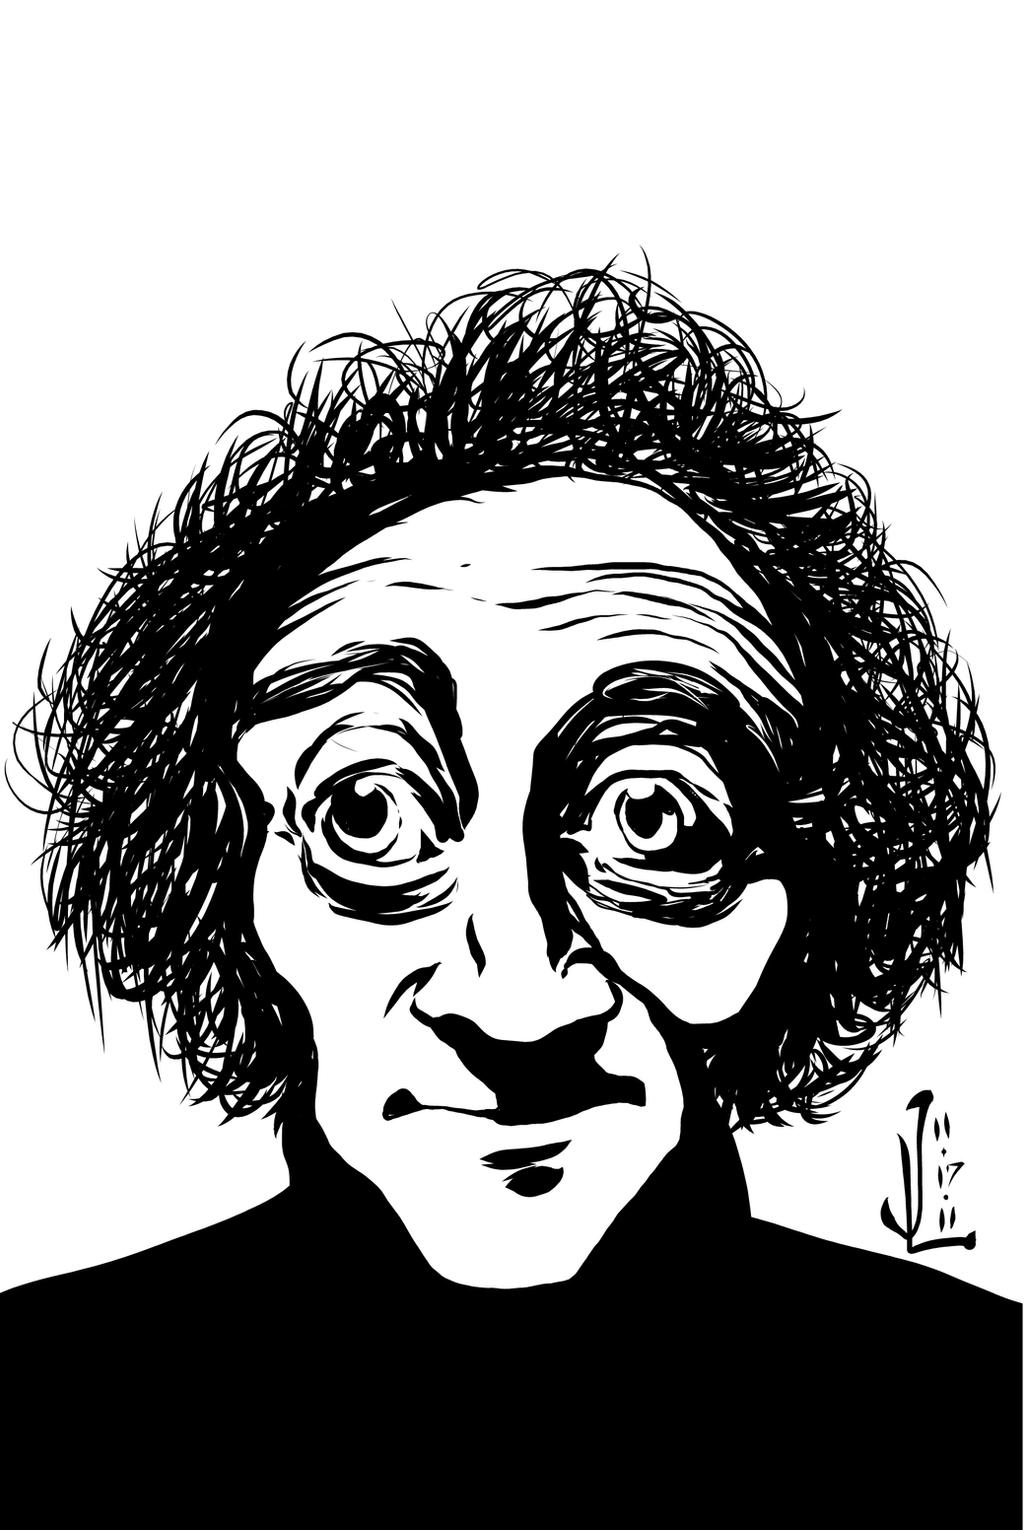 Marty Feldman - NOV '11 Sketch a Day 17 by JeremiahLambertArt